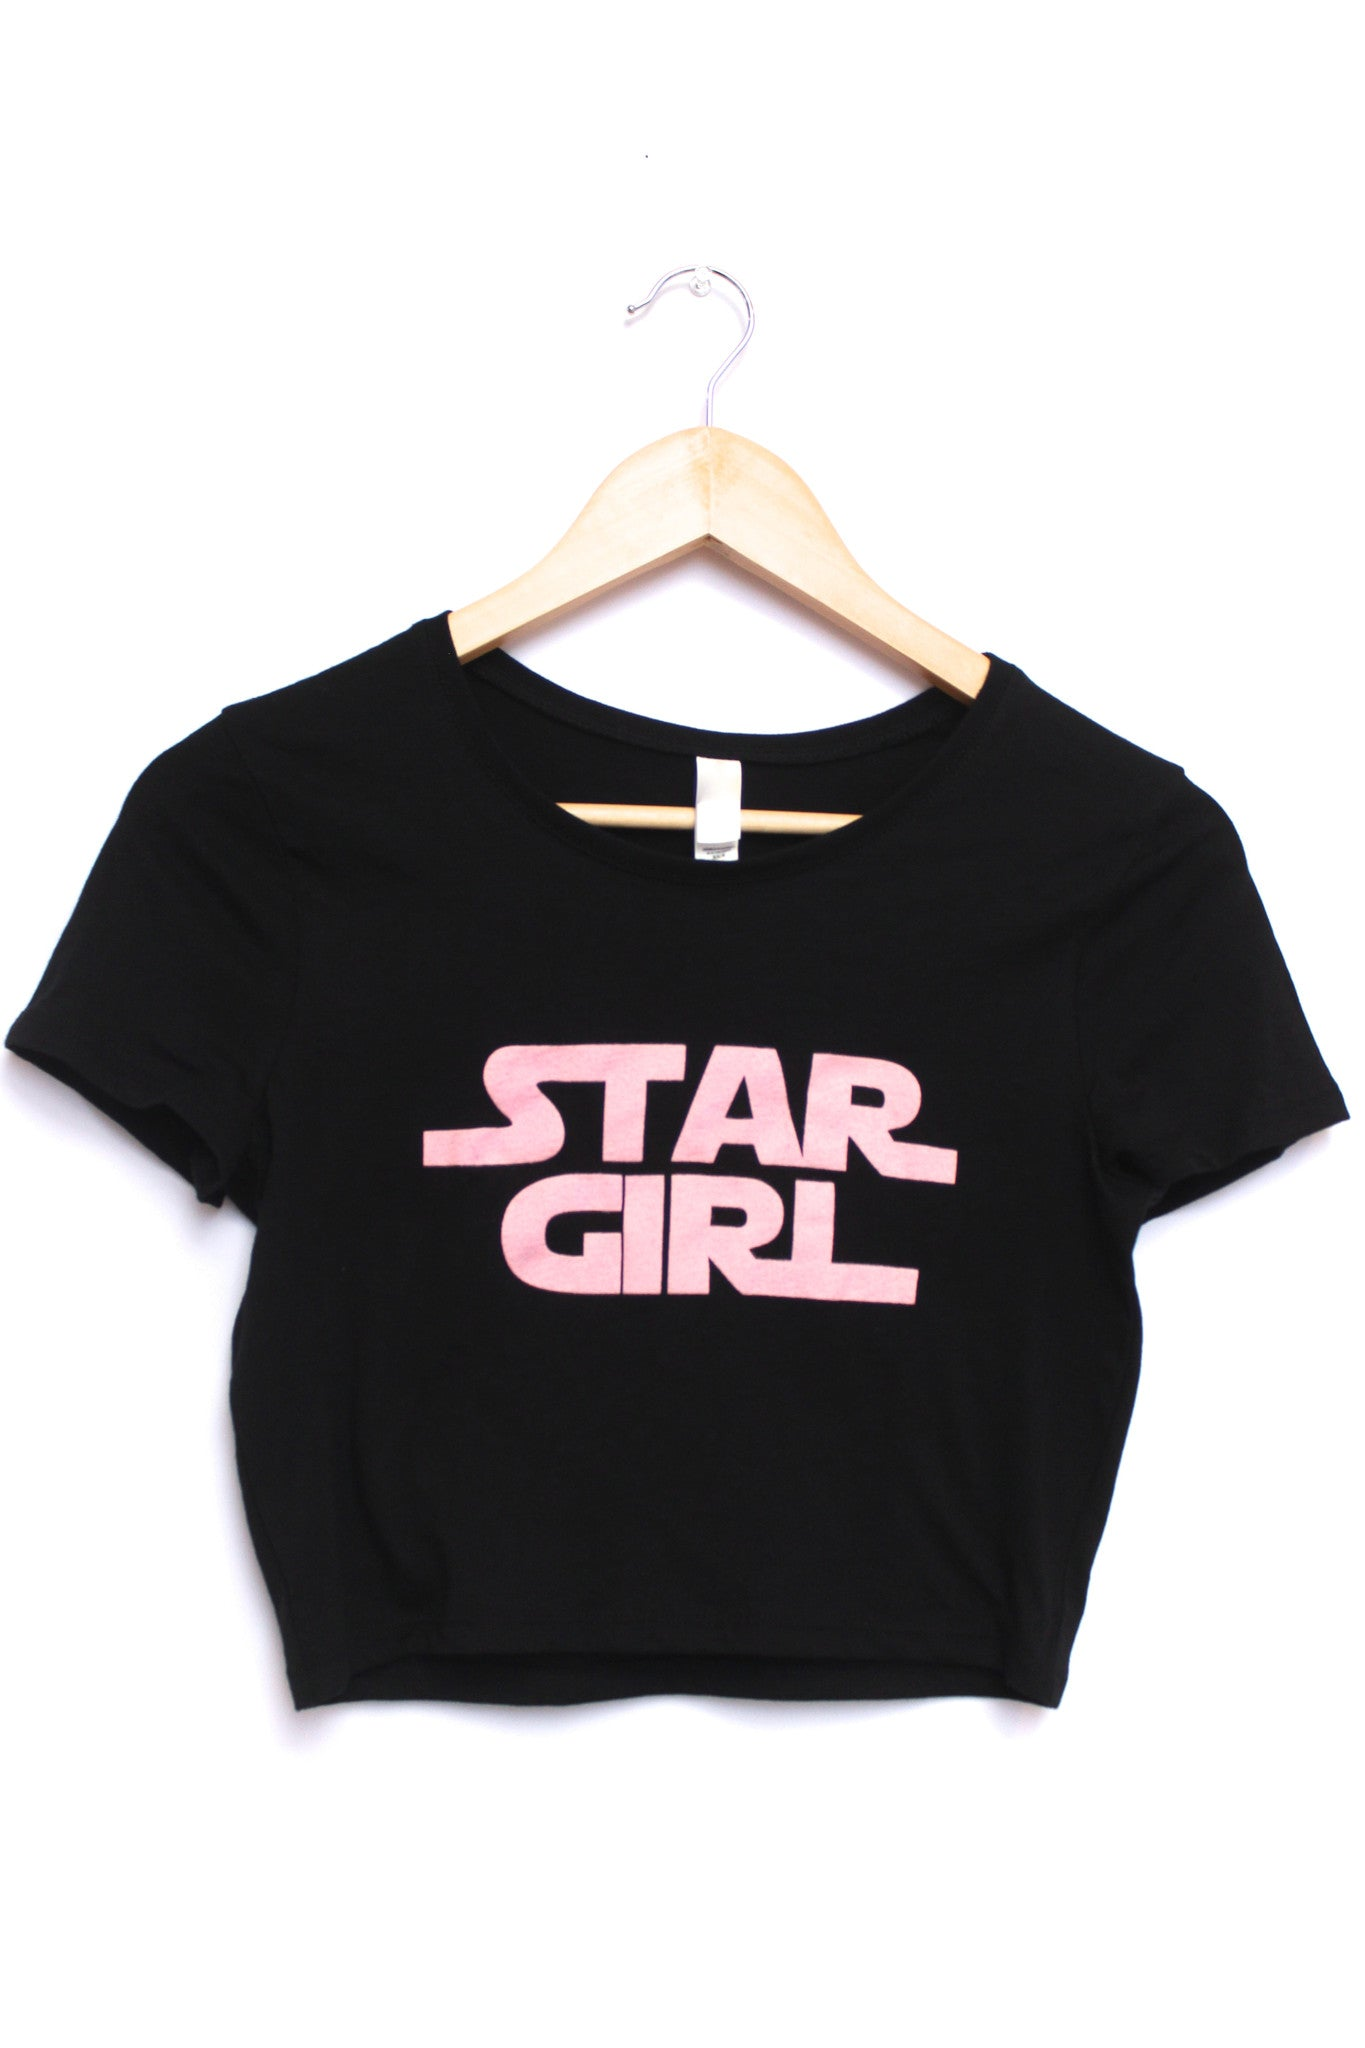 Star Girl Black Graphic Crop Top